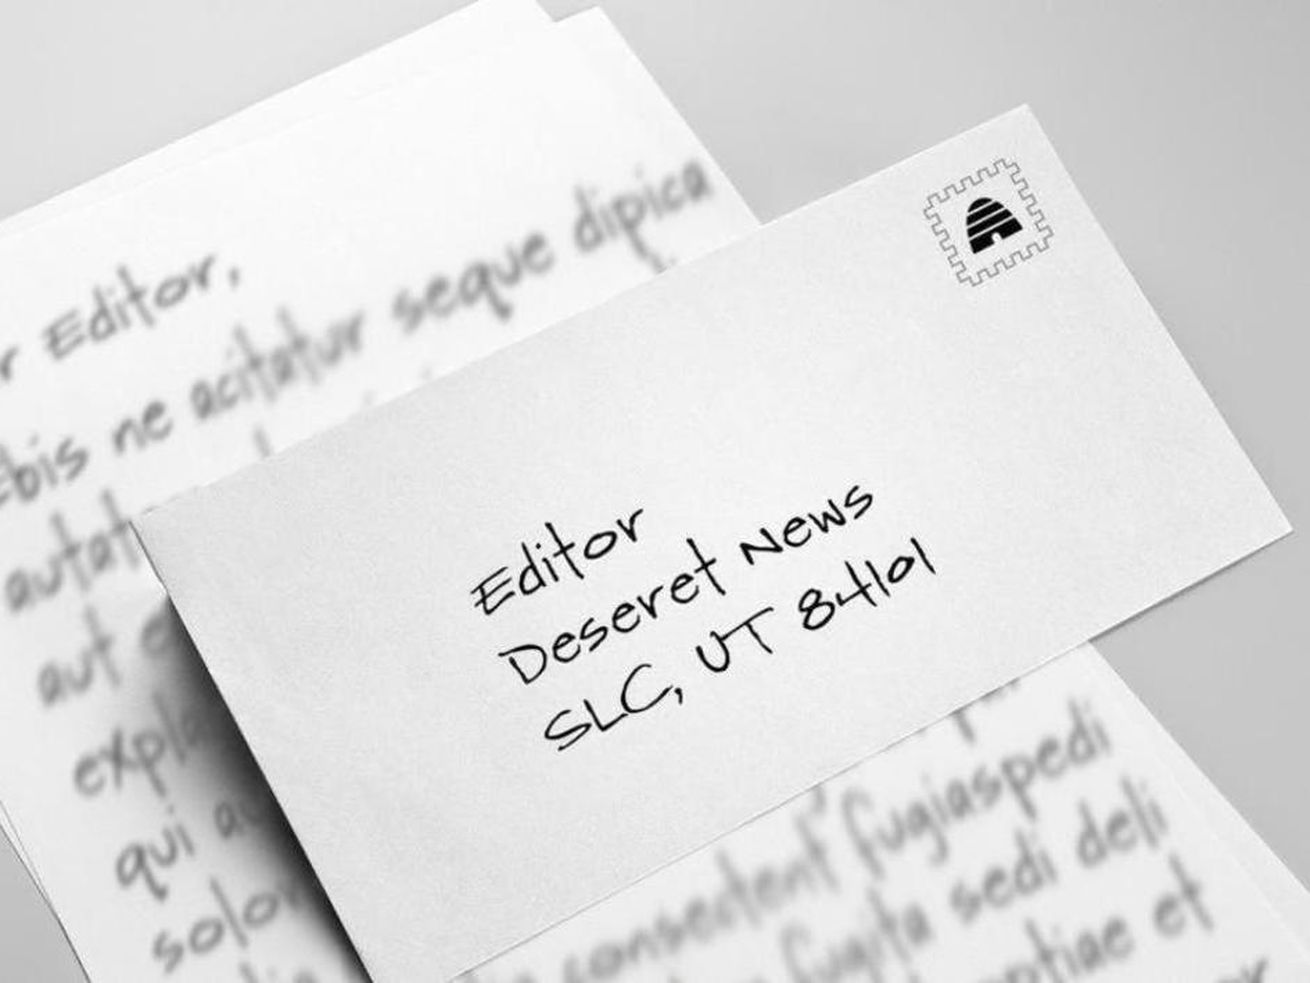 Letter: An opportunity for equality